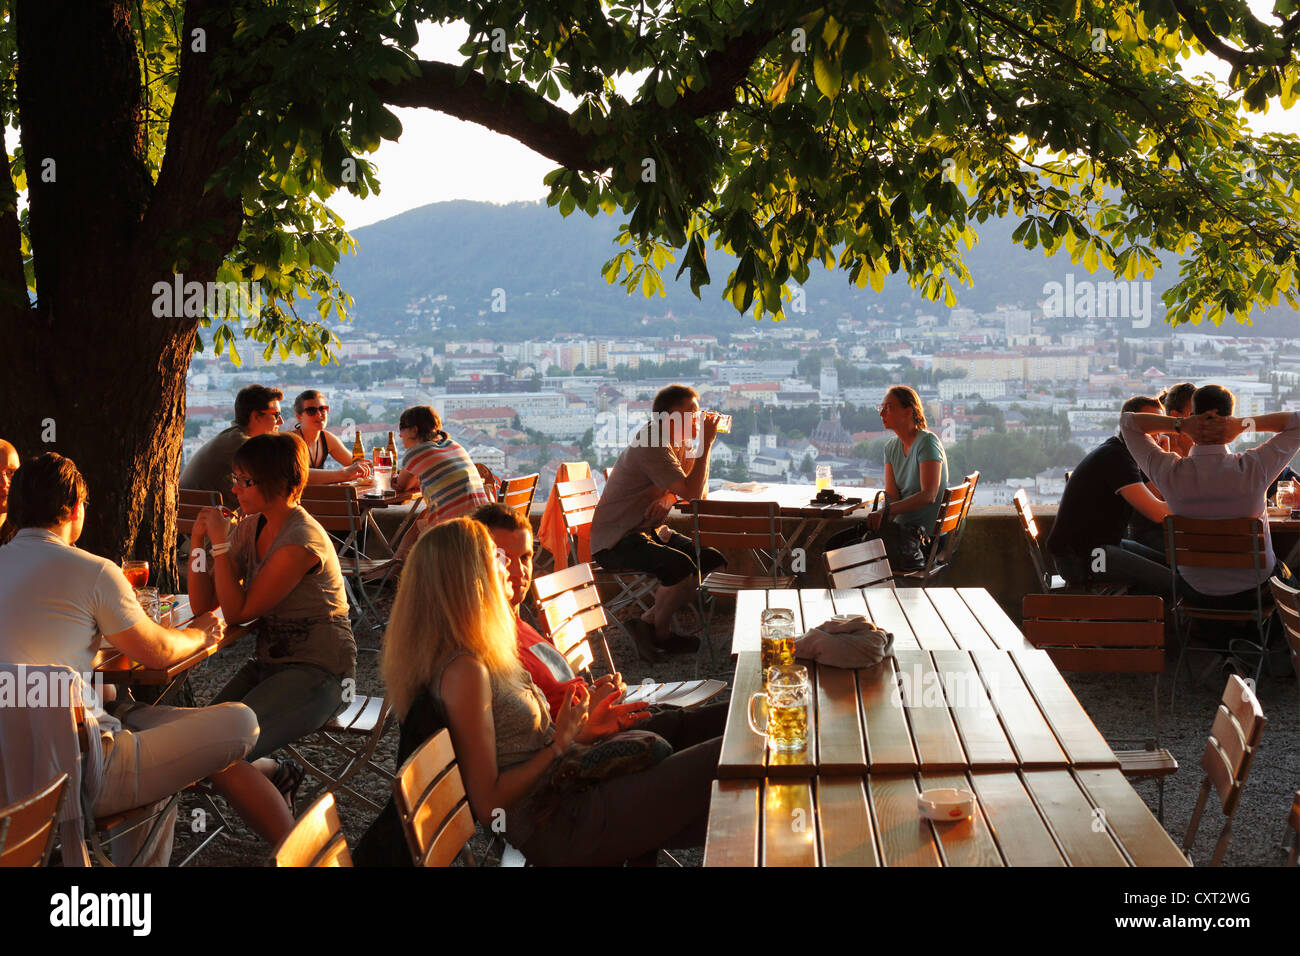 schlossberg beer garden schlossberg castle hill graz styria stock photo royalty free image. Black Bedroom Furniture Sets. Home Design Ideas